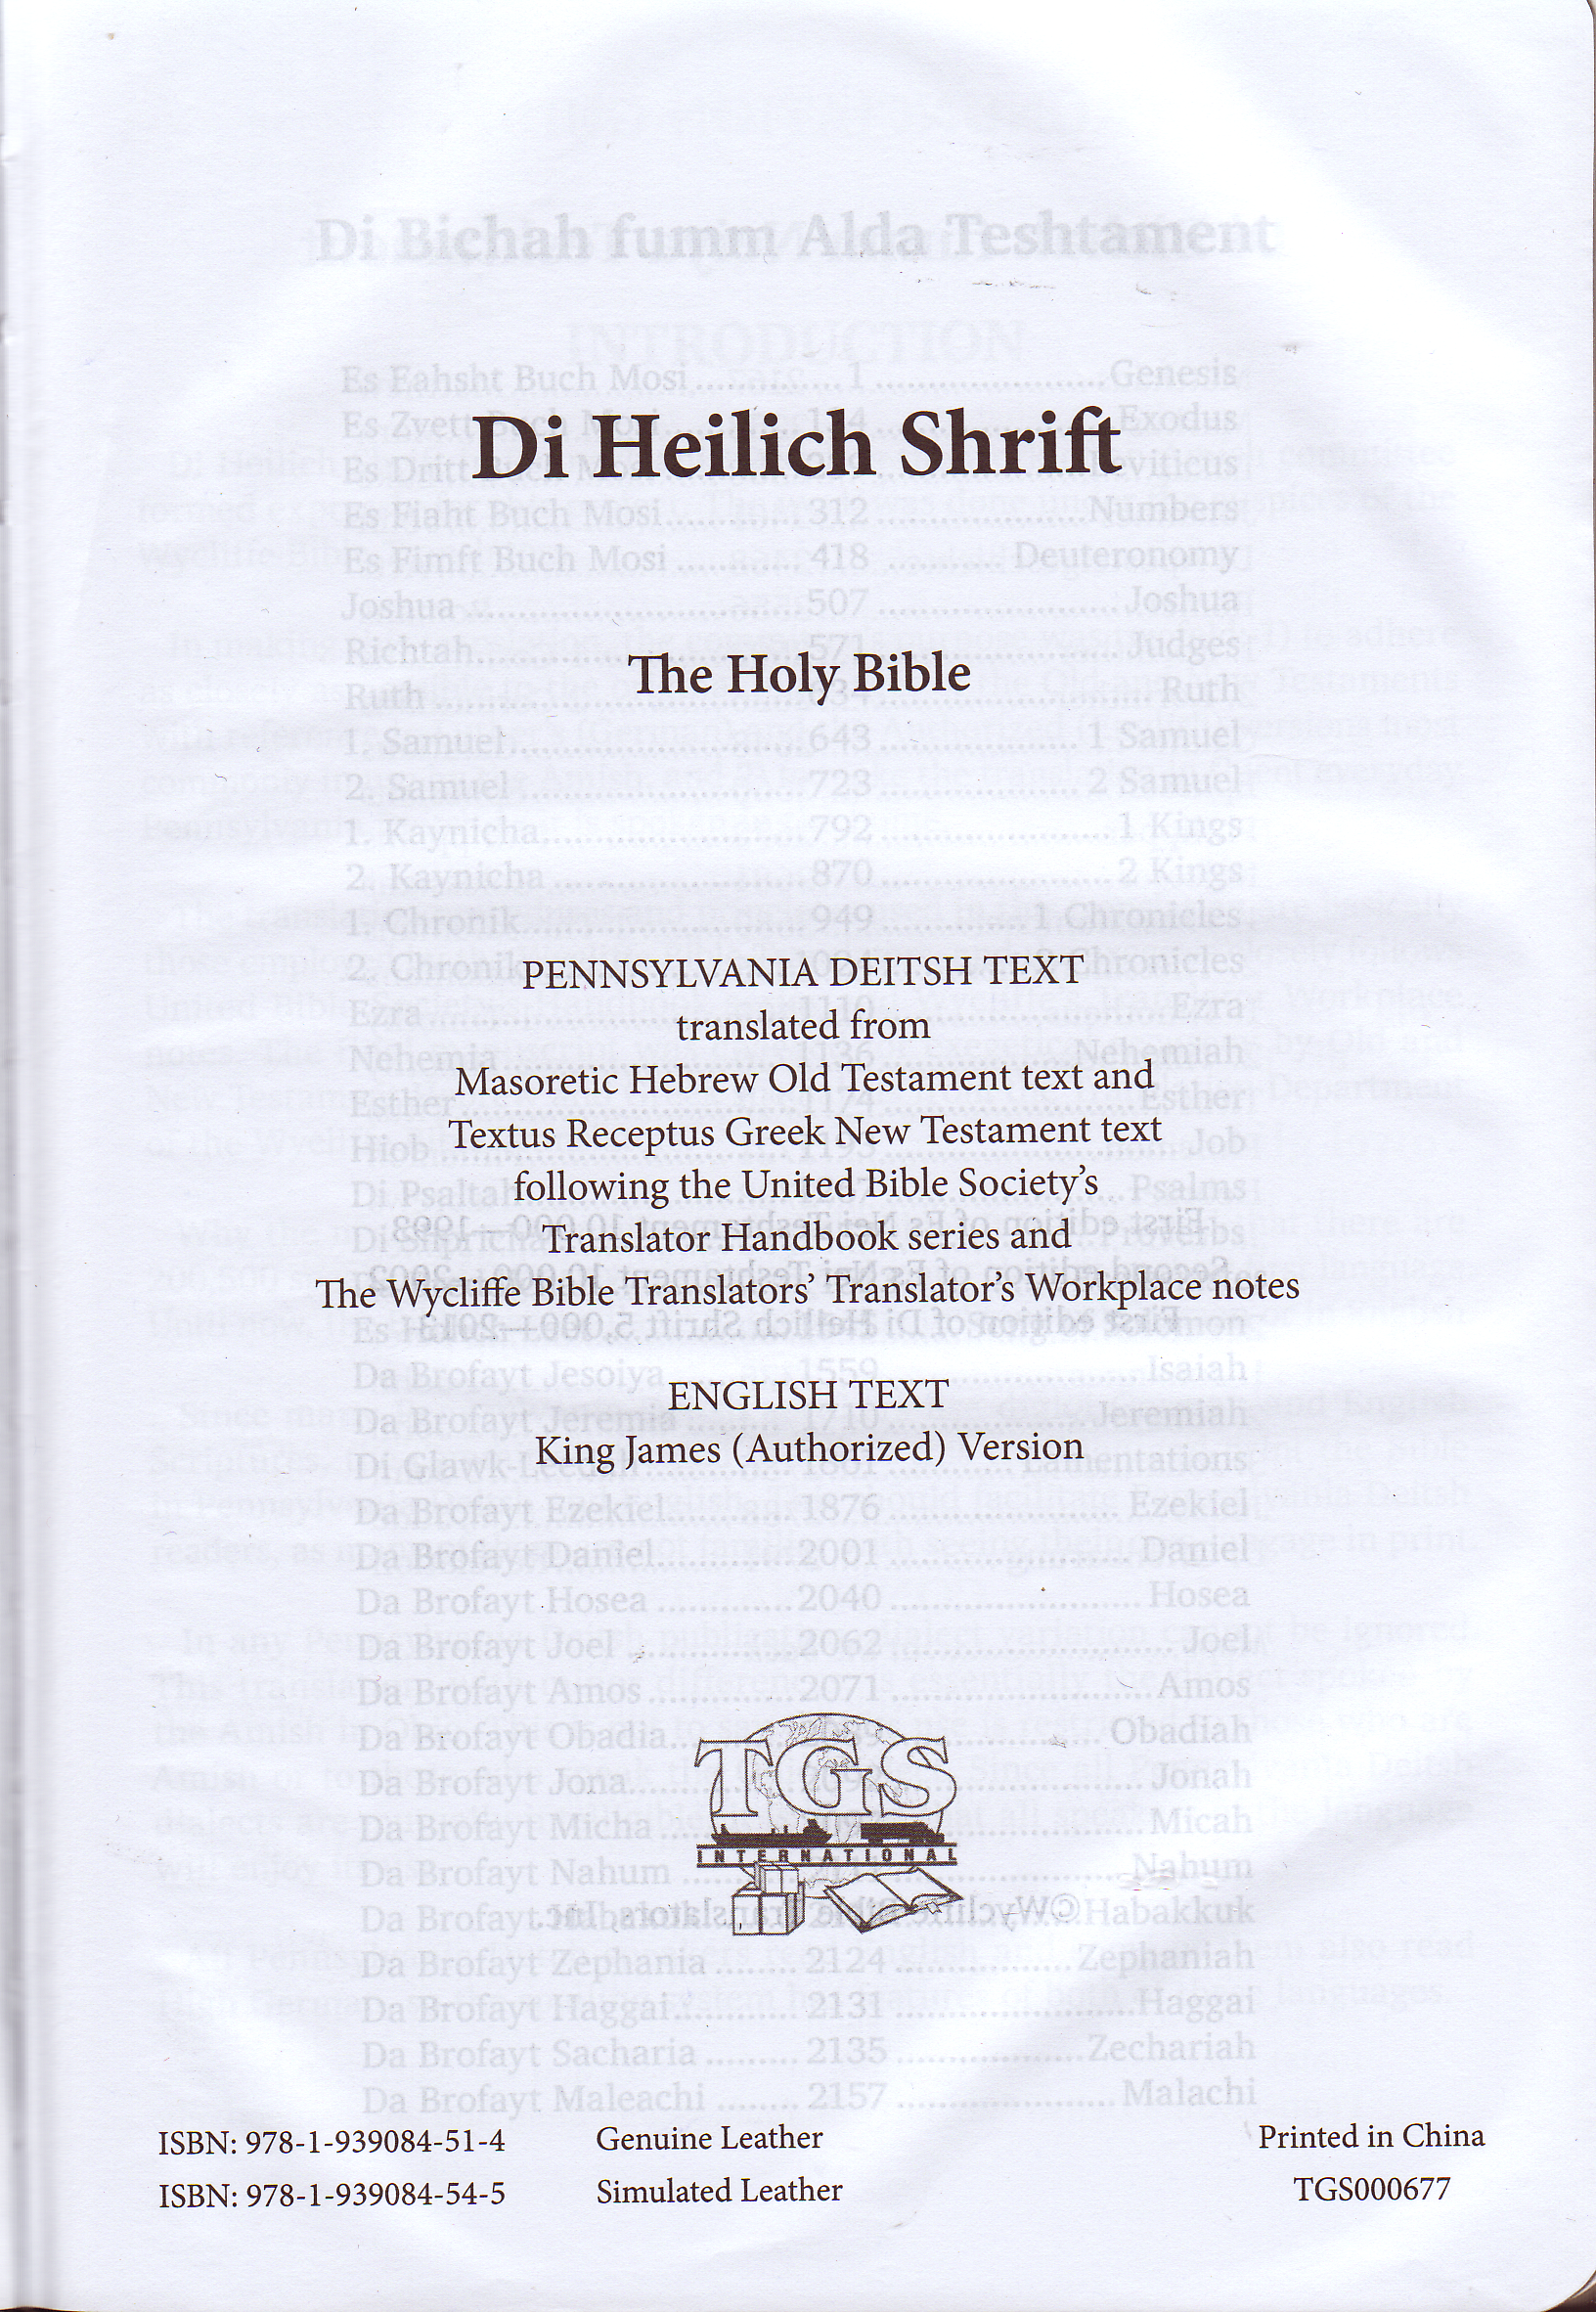 pennsylvania deitsh translation commitee internet bible catalog location collection bibelarchiv birnbaum karlsruhe baden comments hardbound octavo th stitching leather or simulated leather